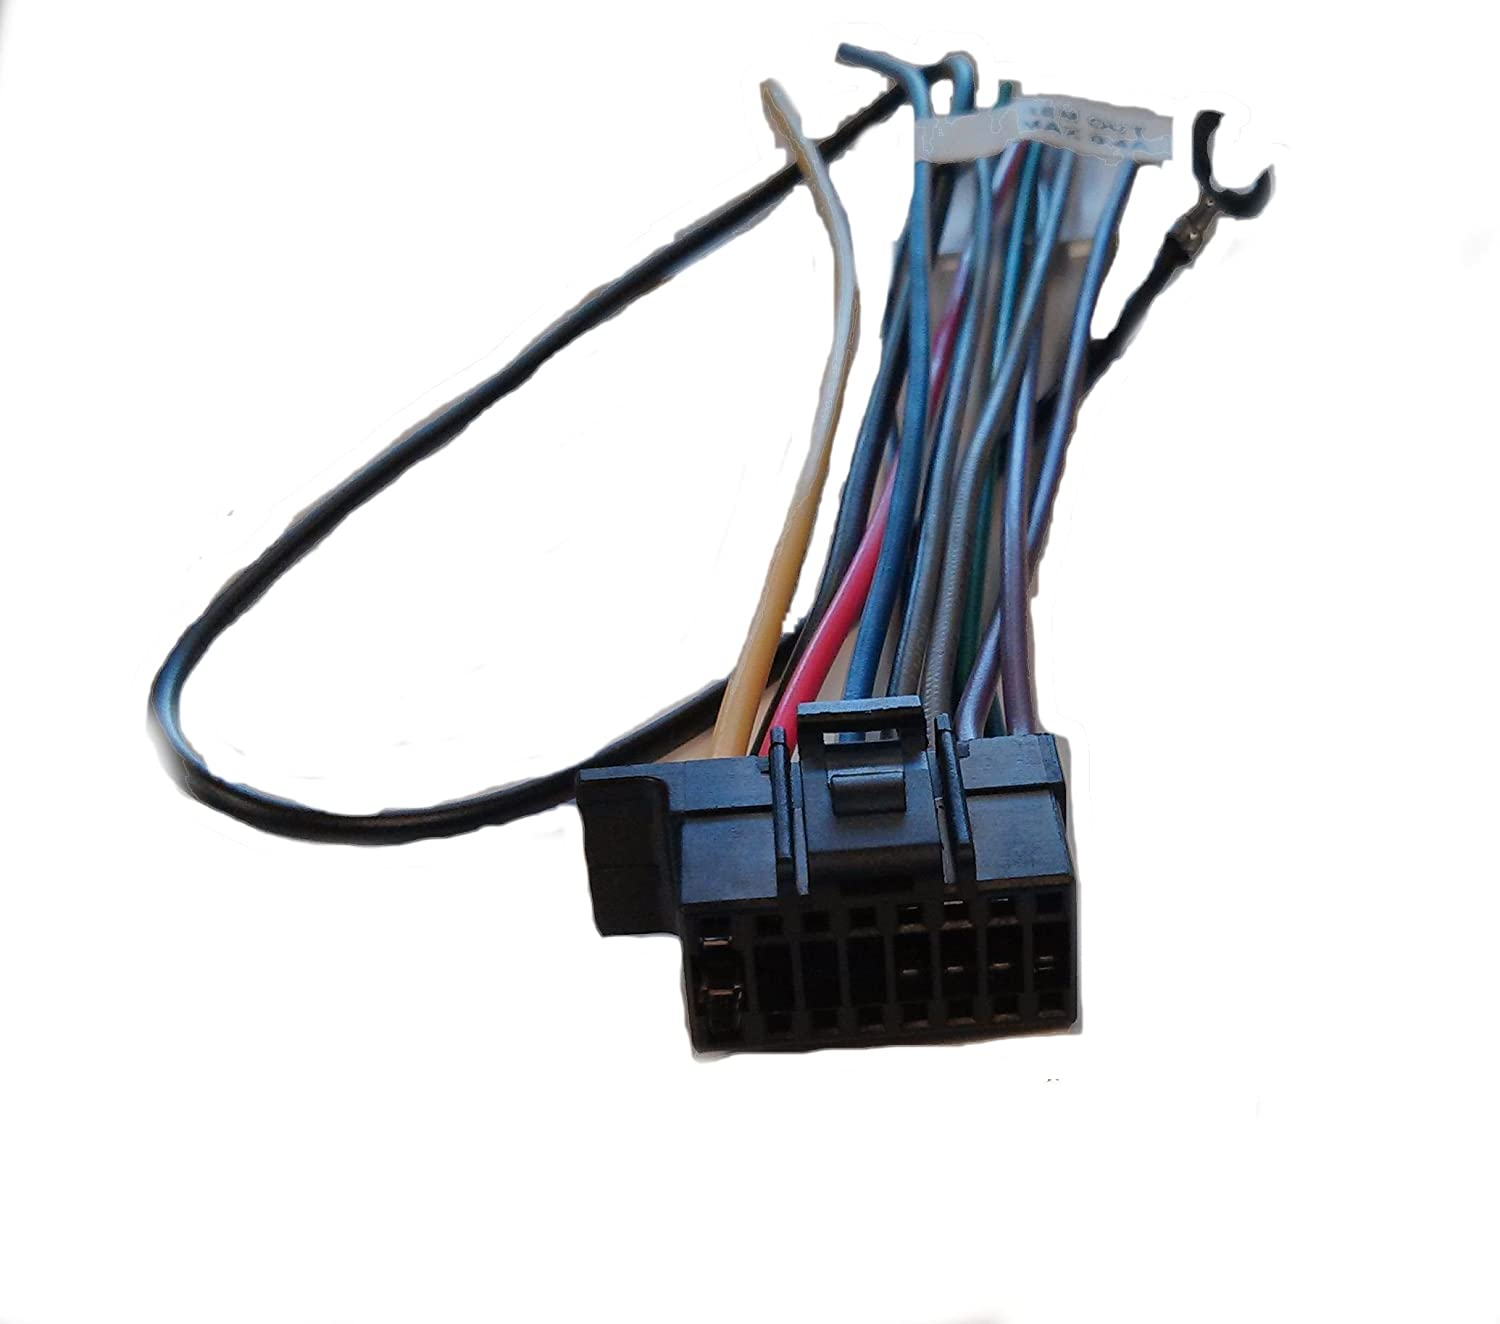 Sony Mex N5000bt Wiring Harness 5000 Bt Diagram Xplod Bt3100p Product Diagrams U2022